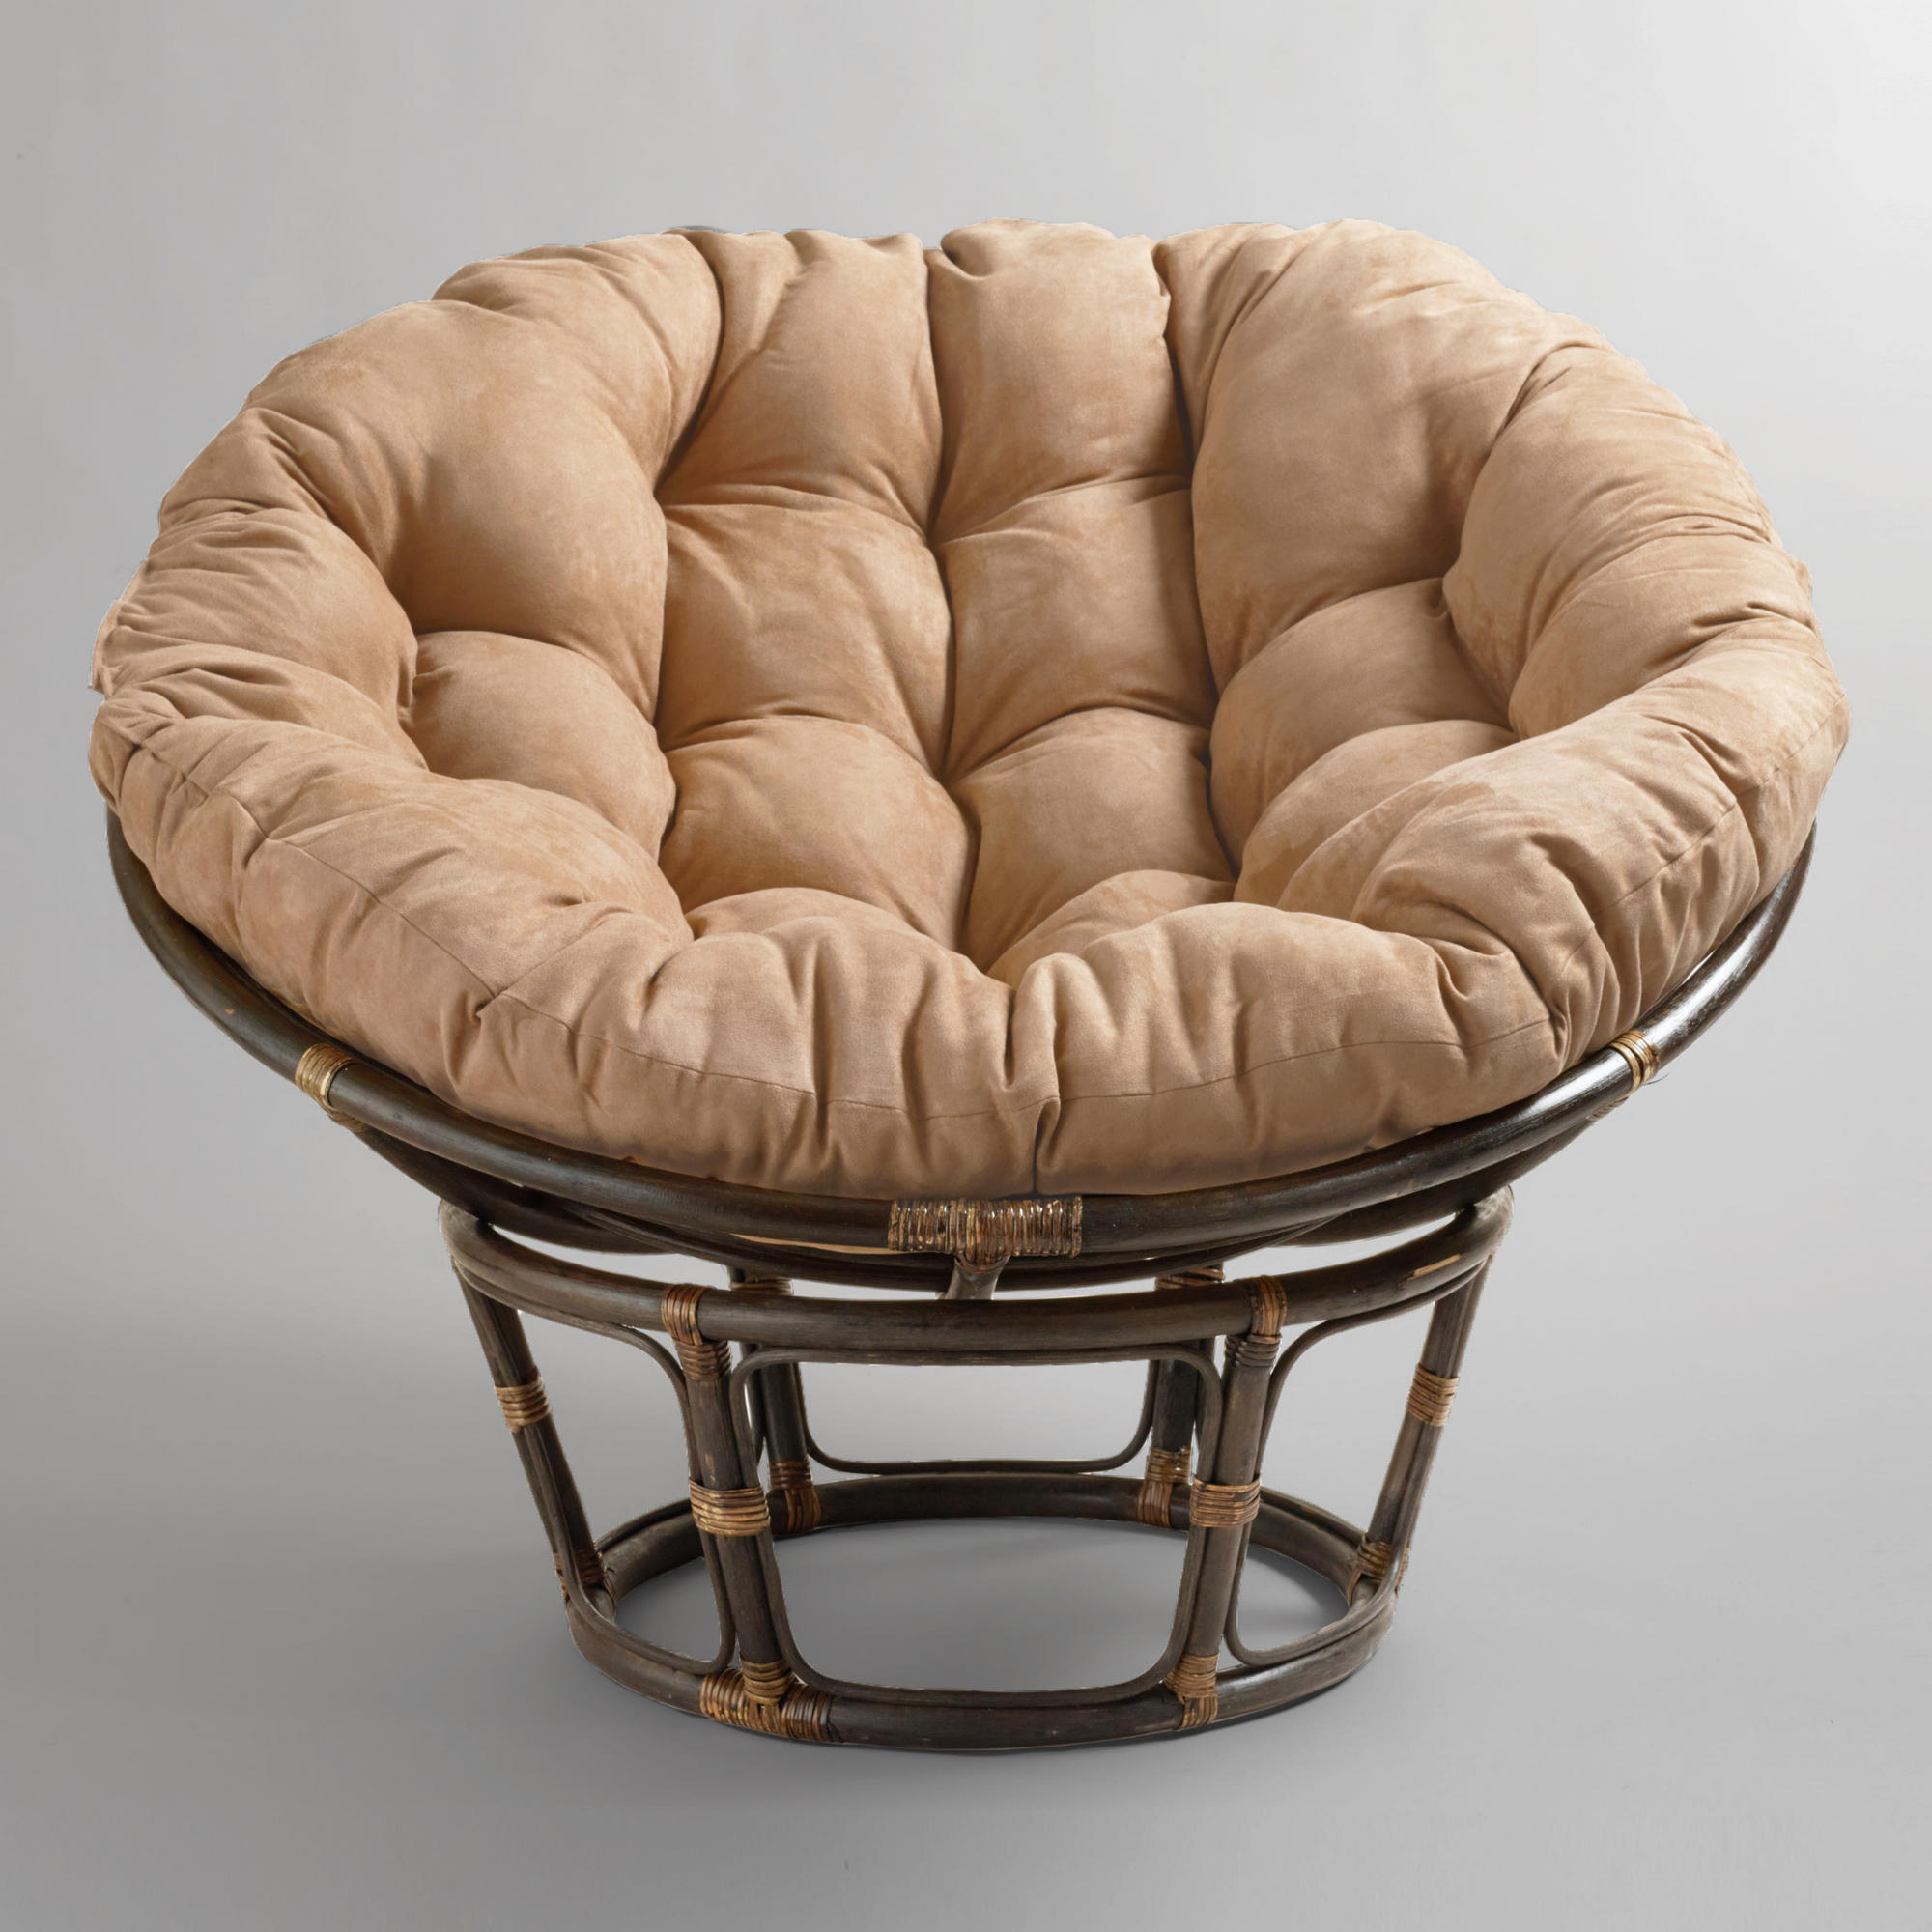 Wicker Glider Patio Furniture | Papasan Swivel Rocker Chair | Rattan Swivel Rocker